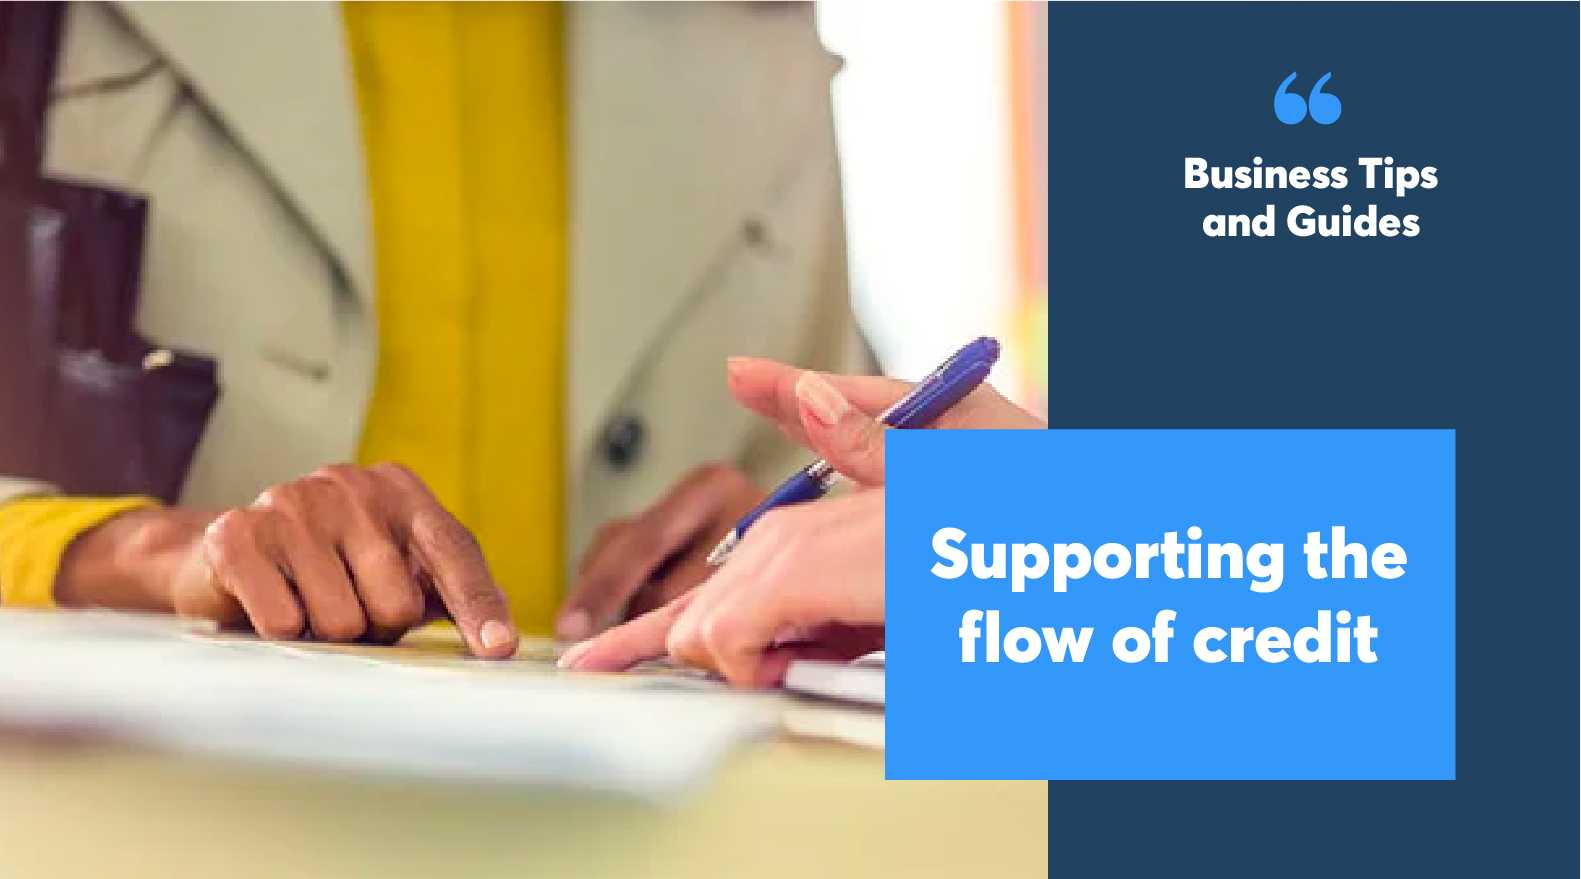 Supporting the flow of credit